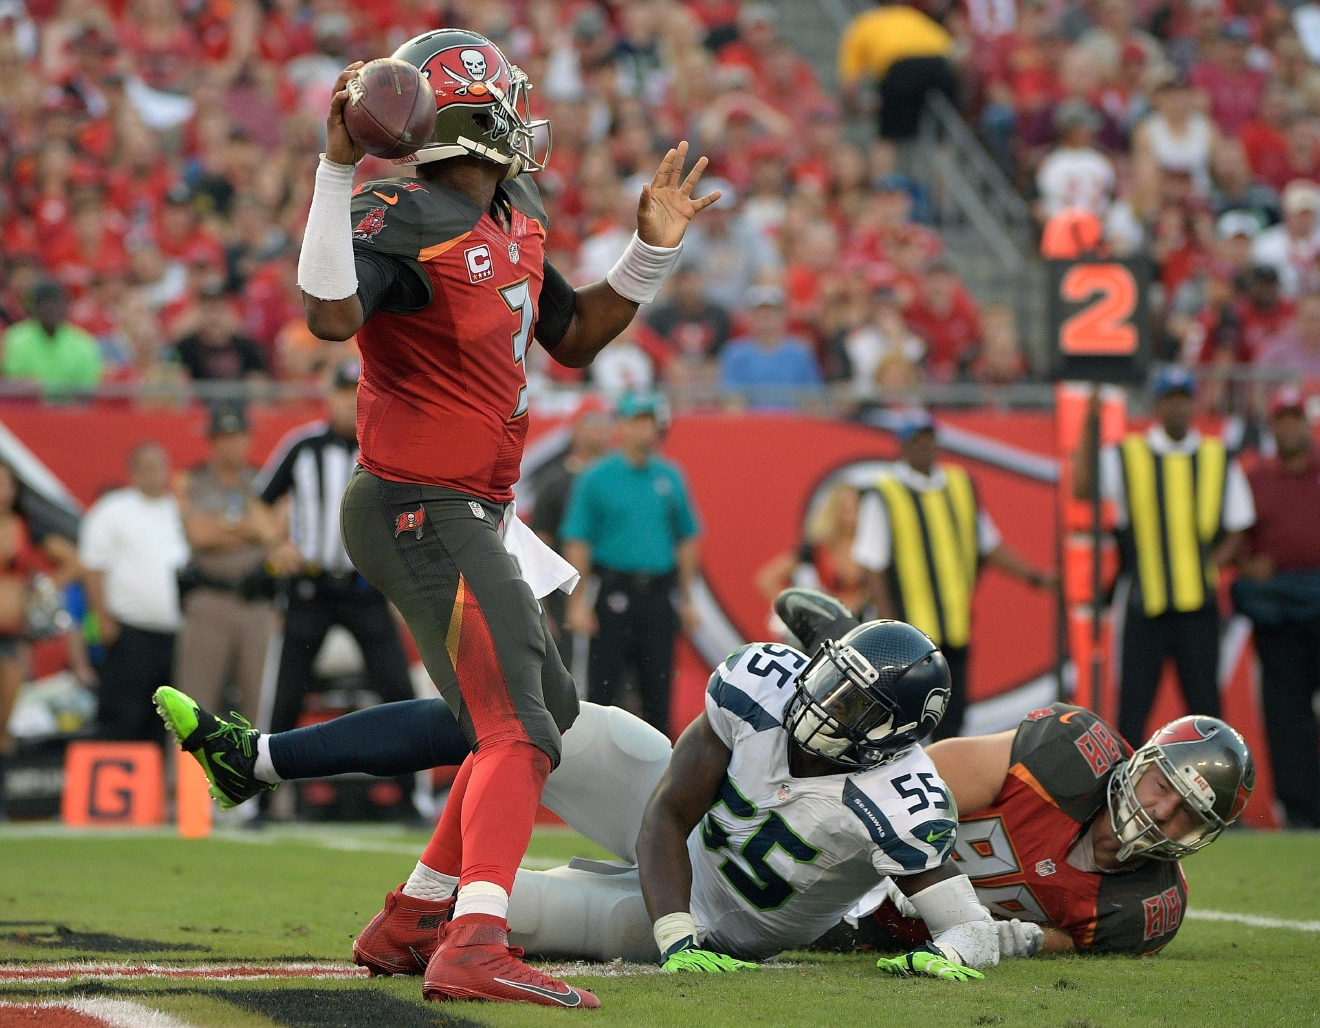 Seattle Seahawks defensive end Frank Clark (55) is held by Tampa Bay Buccaneers tight end Luke Stocker (88) as quarterback Jameis Winston (3) throws a pass from the end zone during the second quarter of an NFL football game Sunday, Nov. 27, 2016, in Tampa, Fla. The Seahawks were awarded a safety on the play. (AP Photo/Phelan Ebenhack)